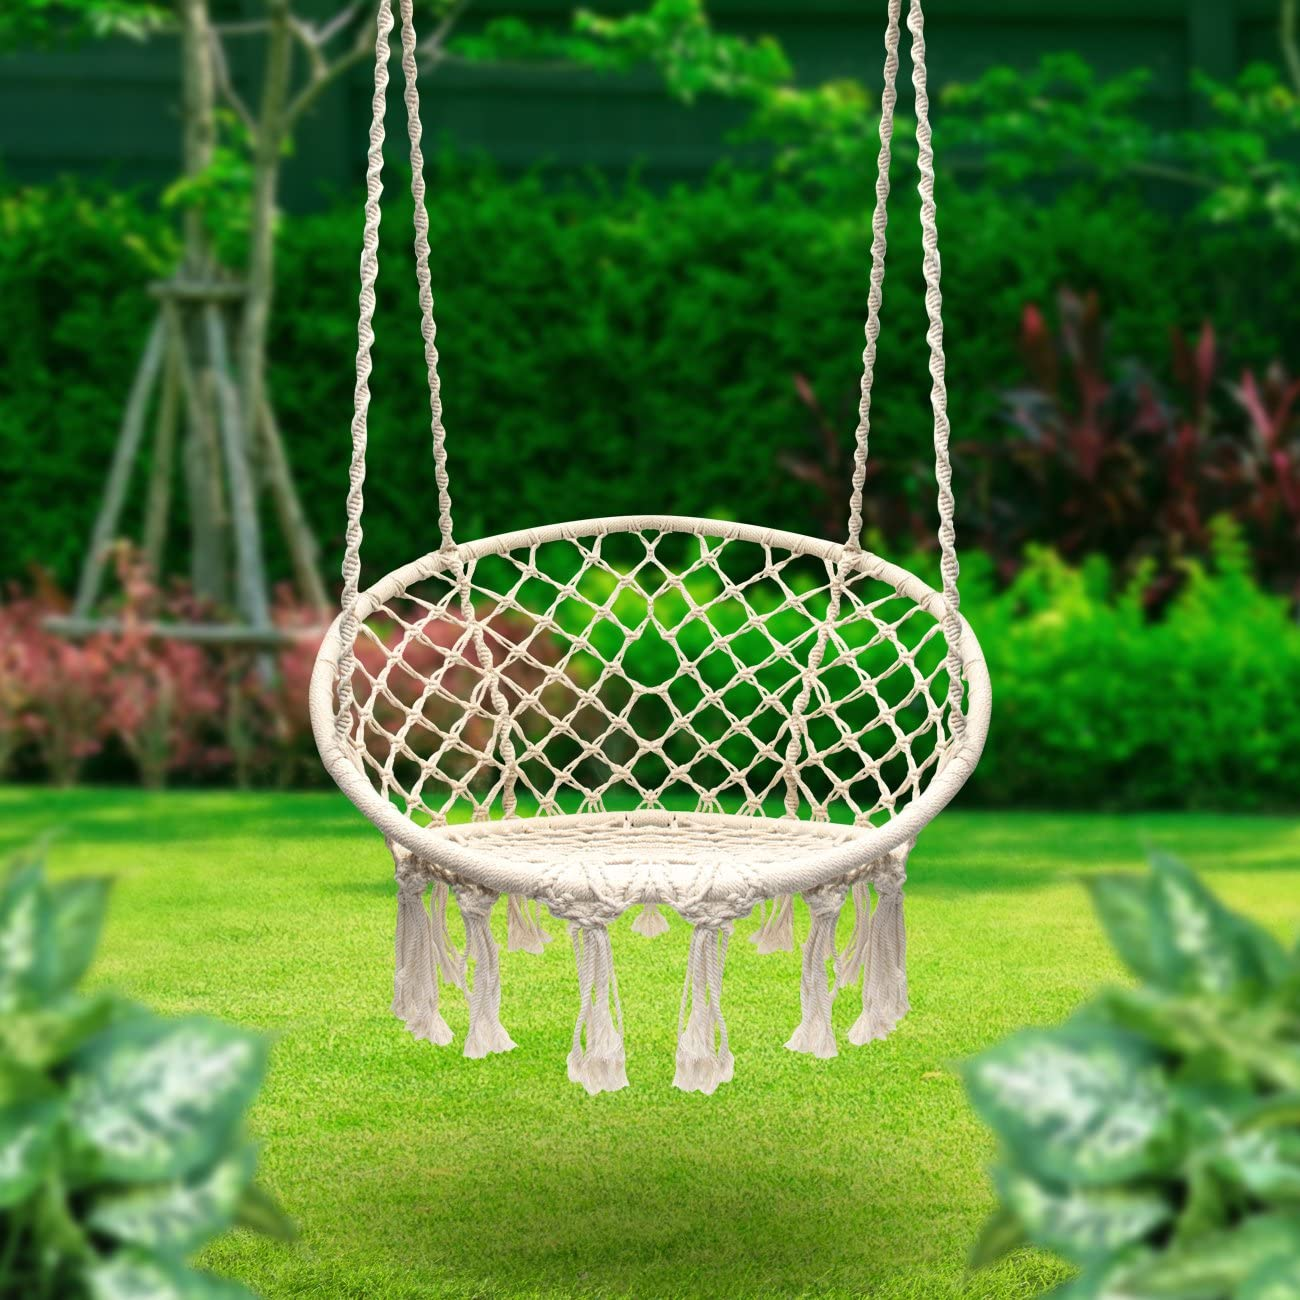 Sorbus-Hammock-Macrame 15 Unique Furniture Designs for Outdoor Small Spaces